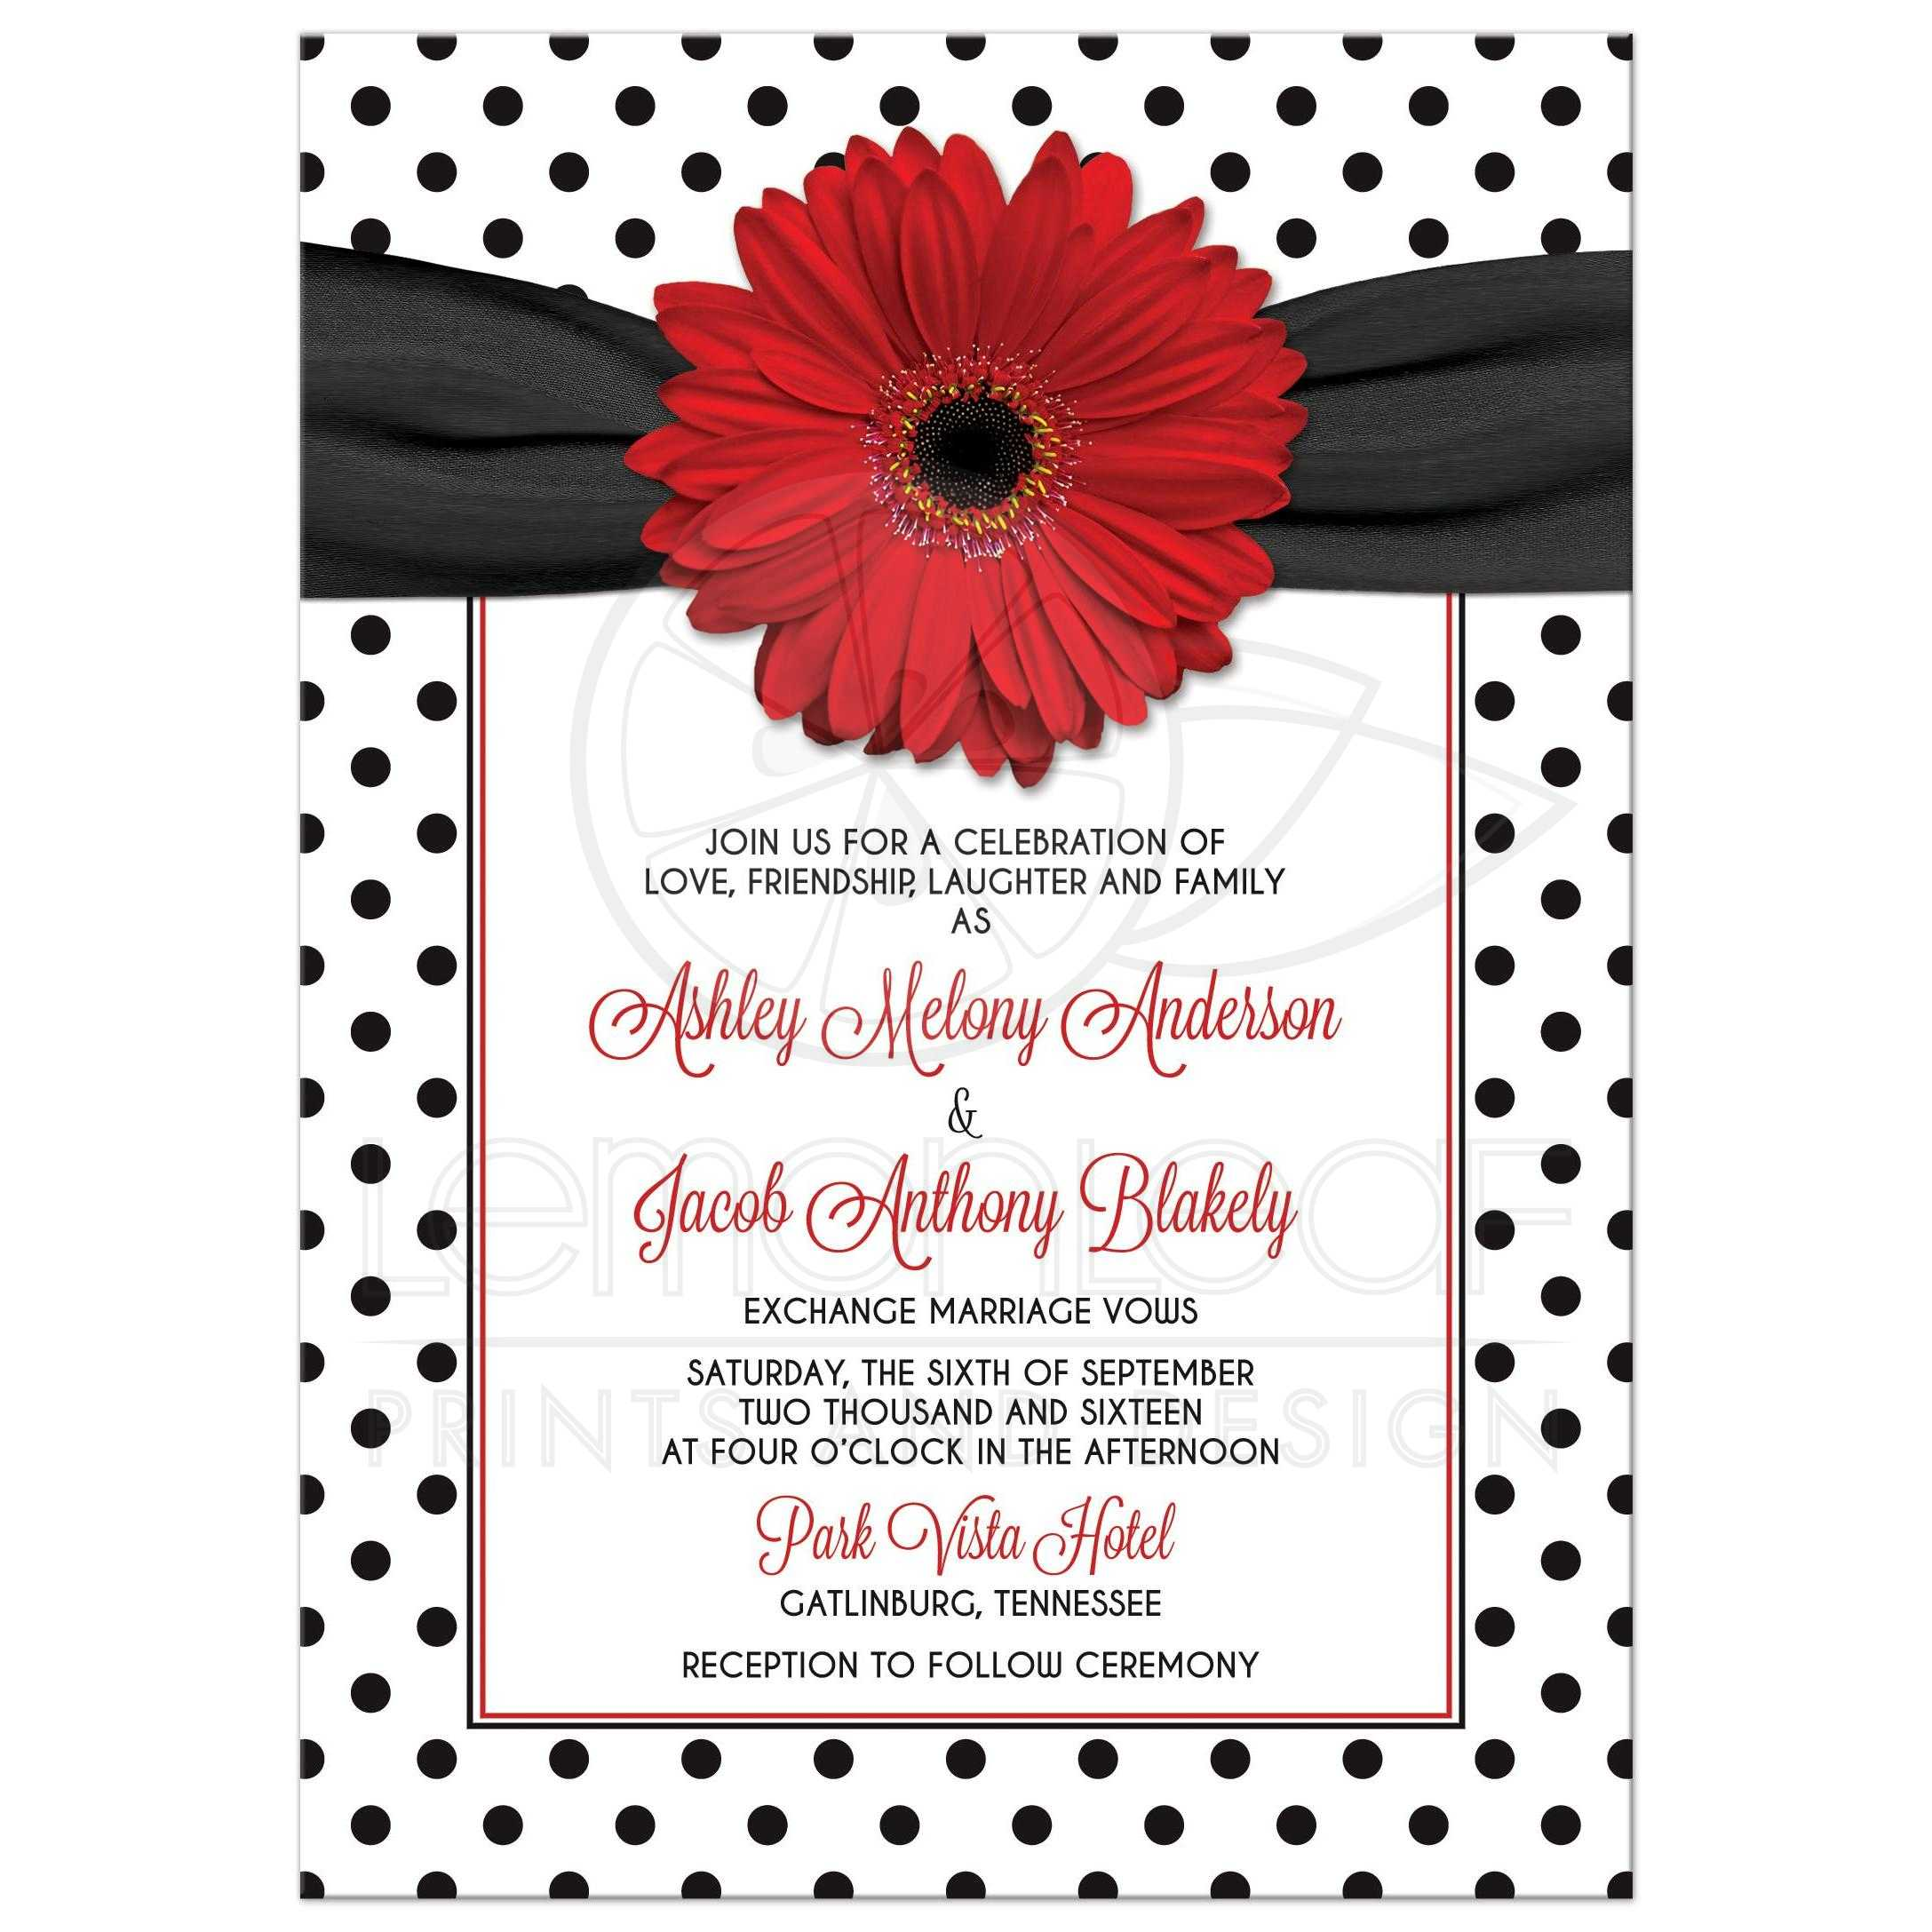 Red Daisy Polka Dot Wedding Invitation | Retro Red Black White